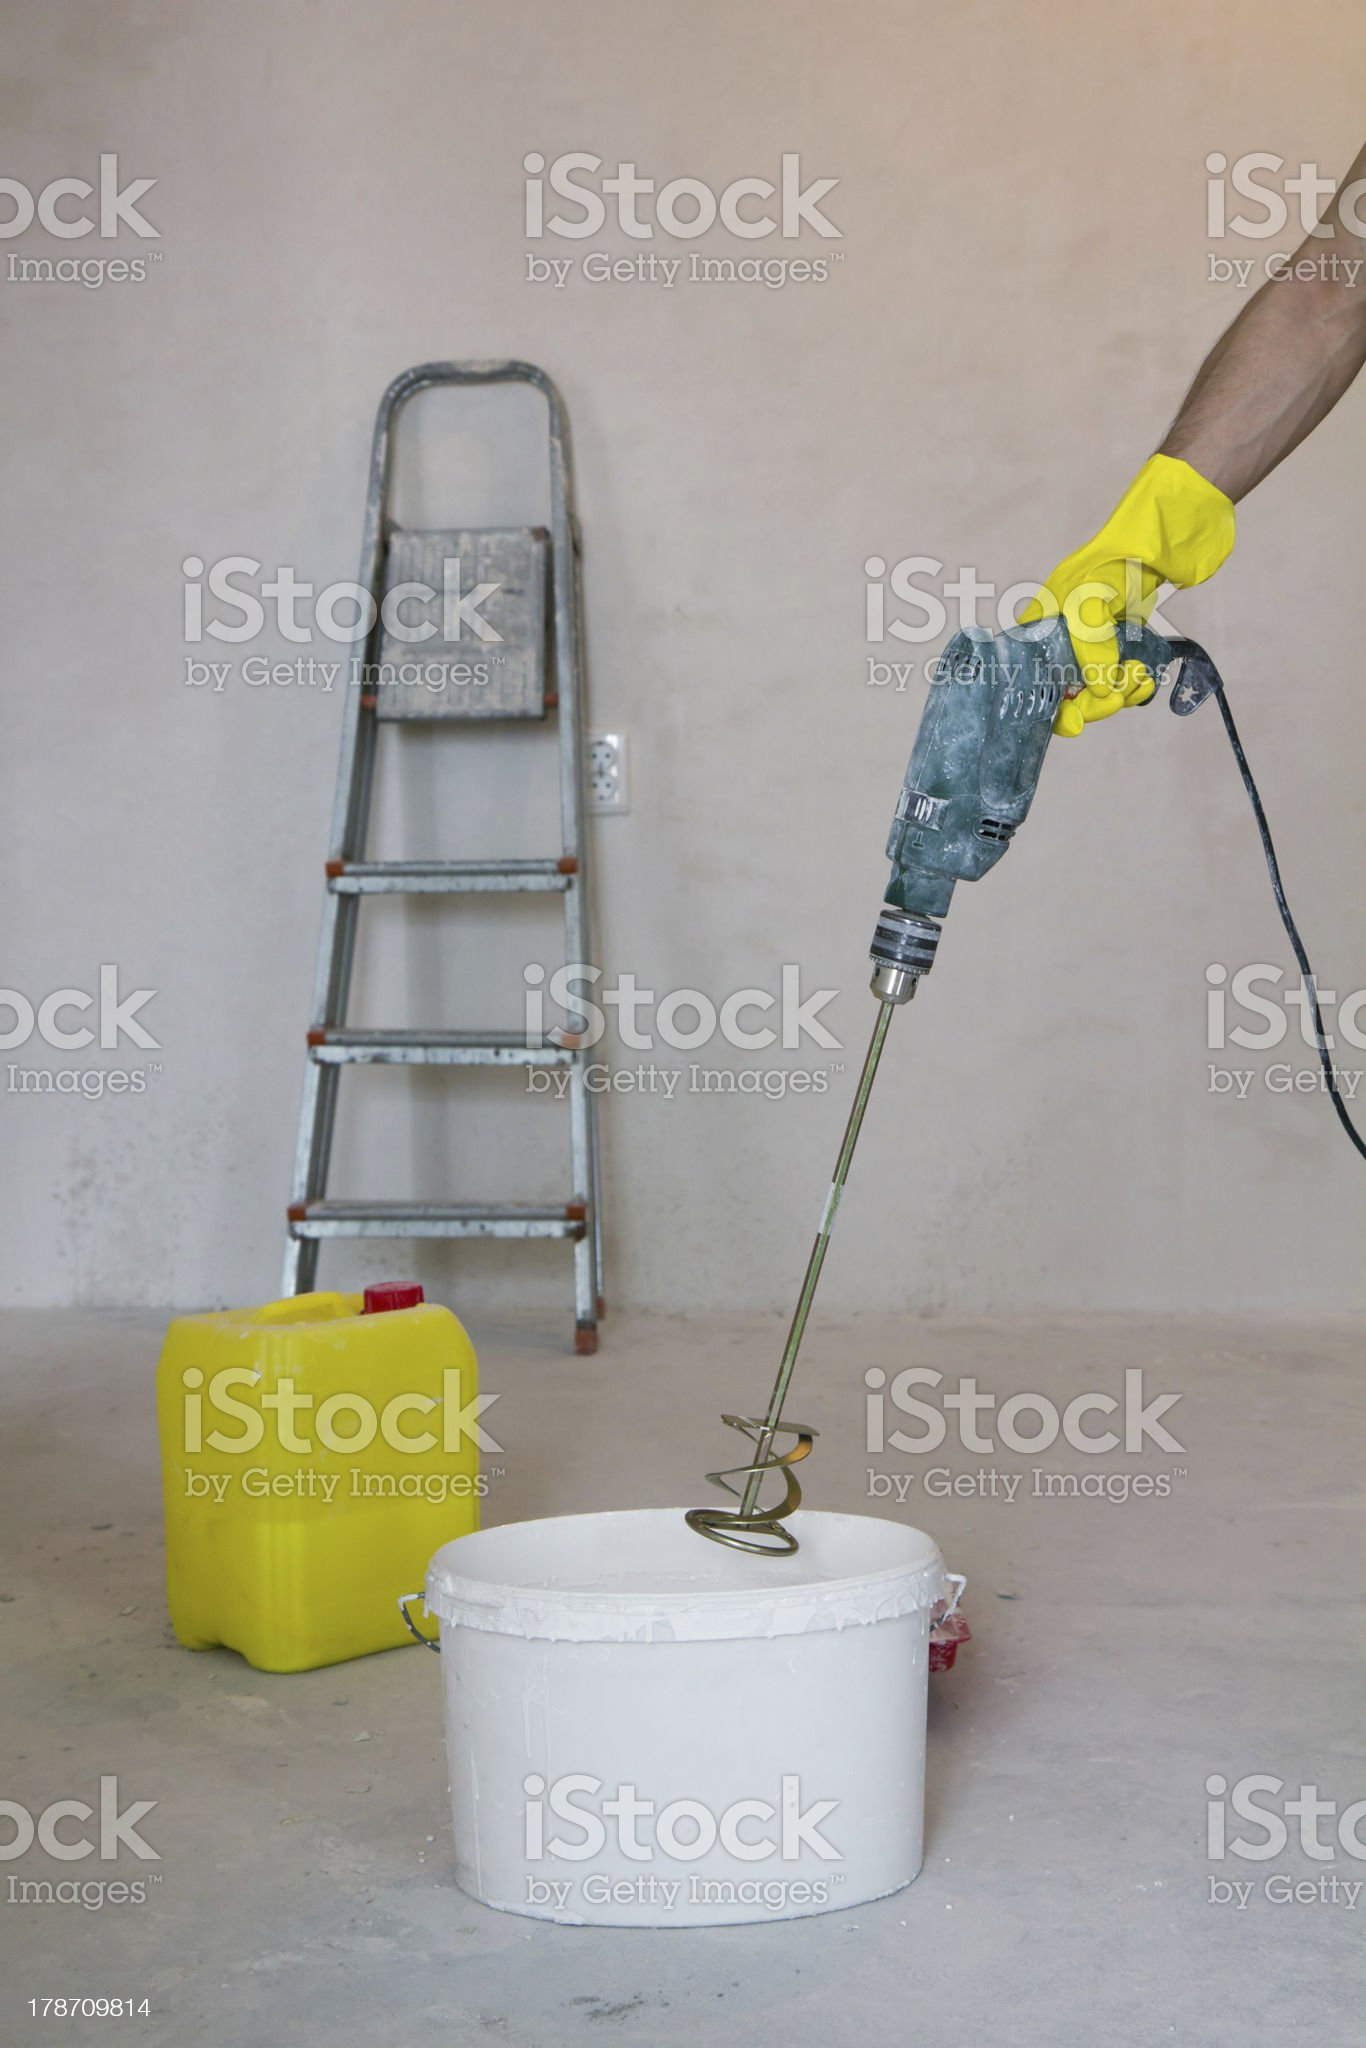 mixing glue with a power drill royalty-free stock photo